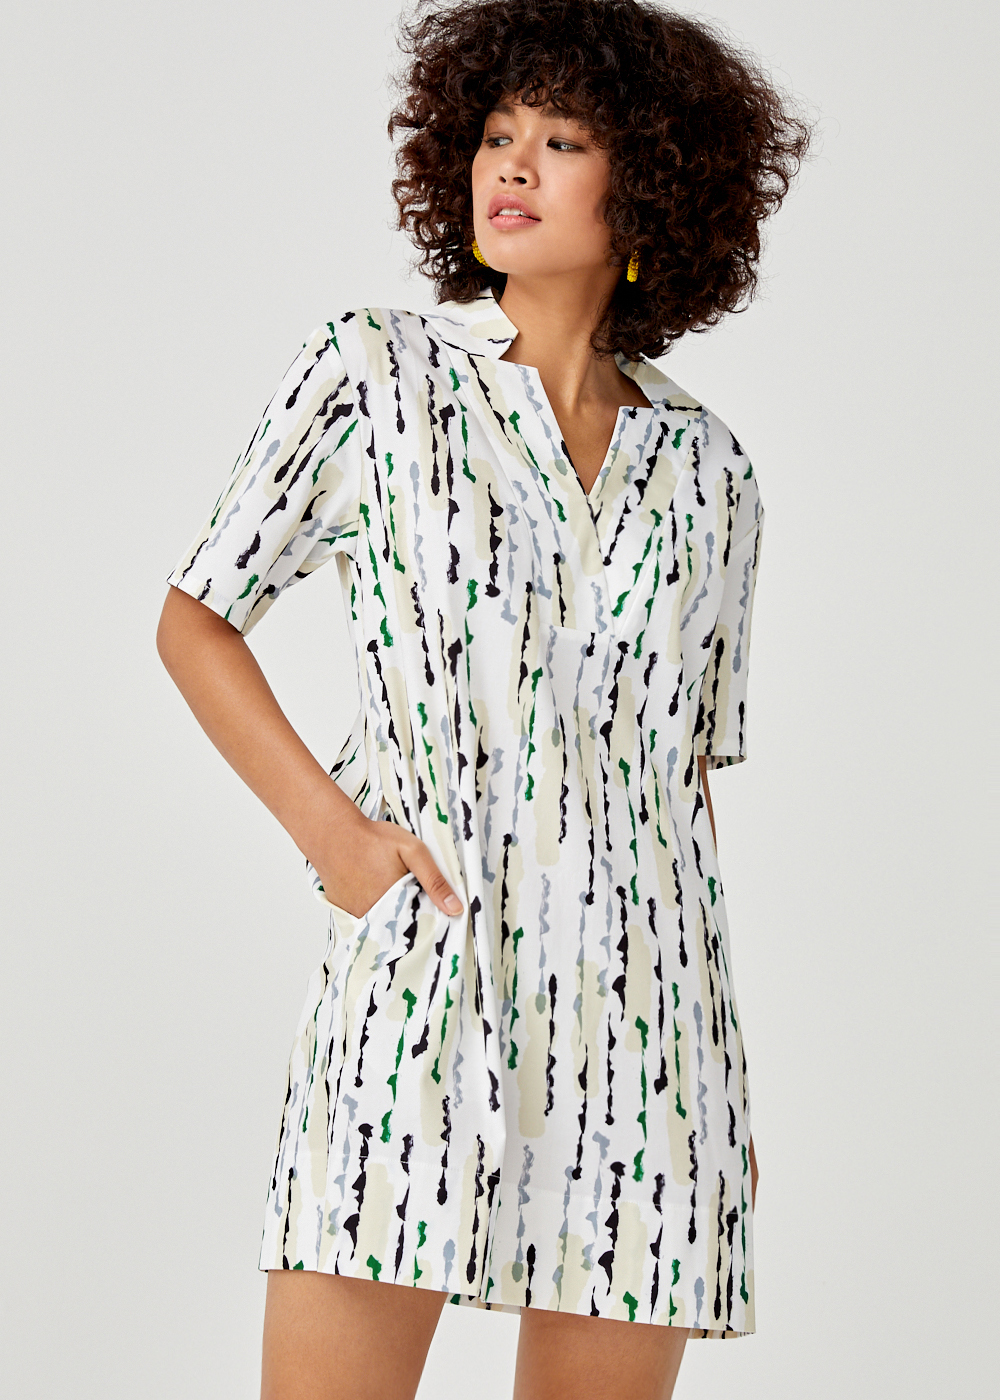 Liana Shift Dress in Afternoon Drizzle